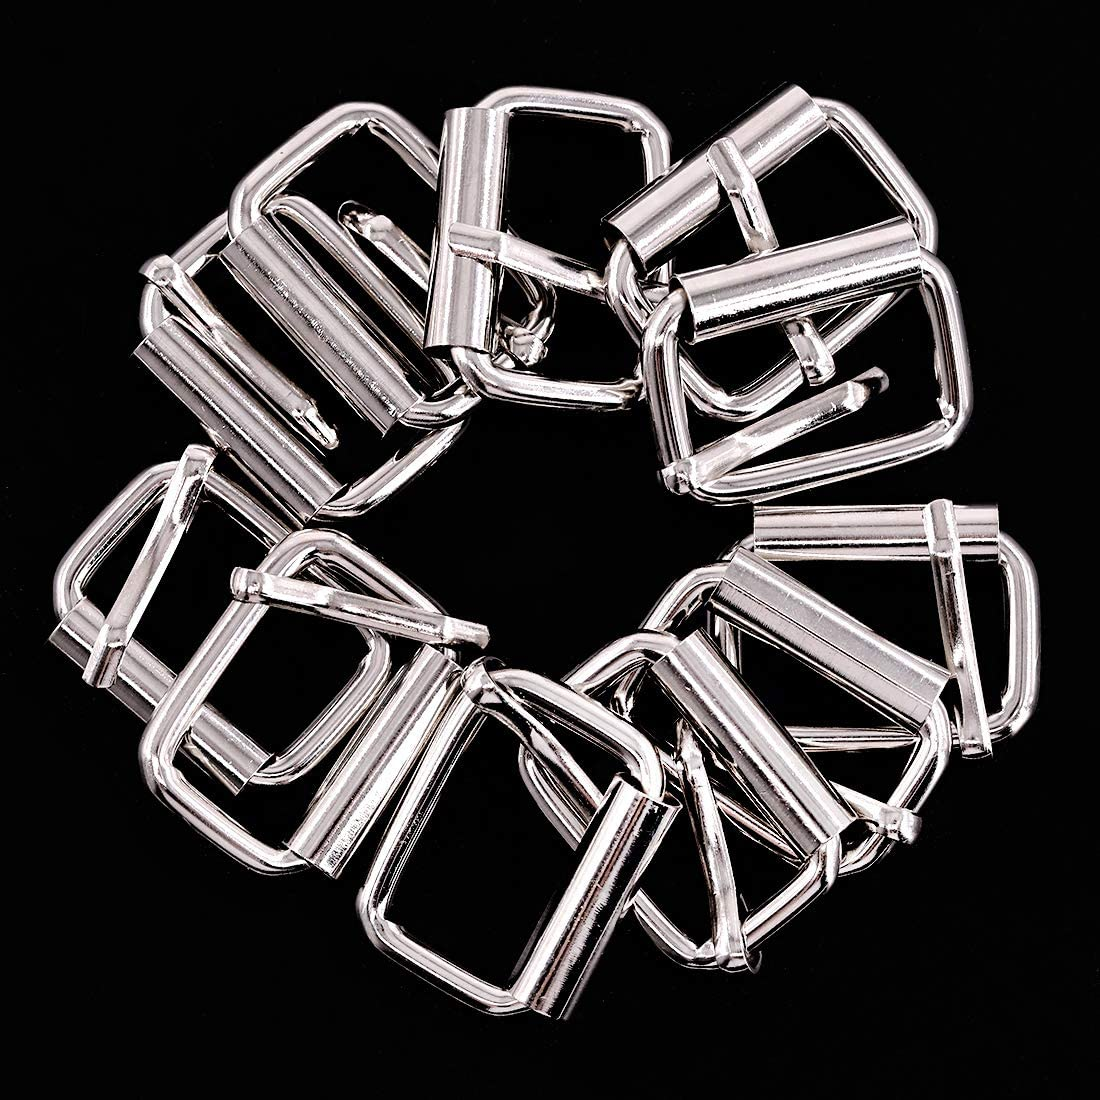 25mm Bronze Heavy Duty Metal Rectangle Ring Webbing Belts Buckle Metal Rings for for Belt Bags DIY Accessories Keychains Belts and Dog Leash Swpeet 60Pcs 1 Inch